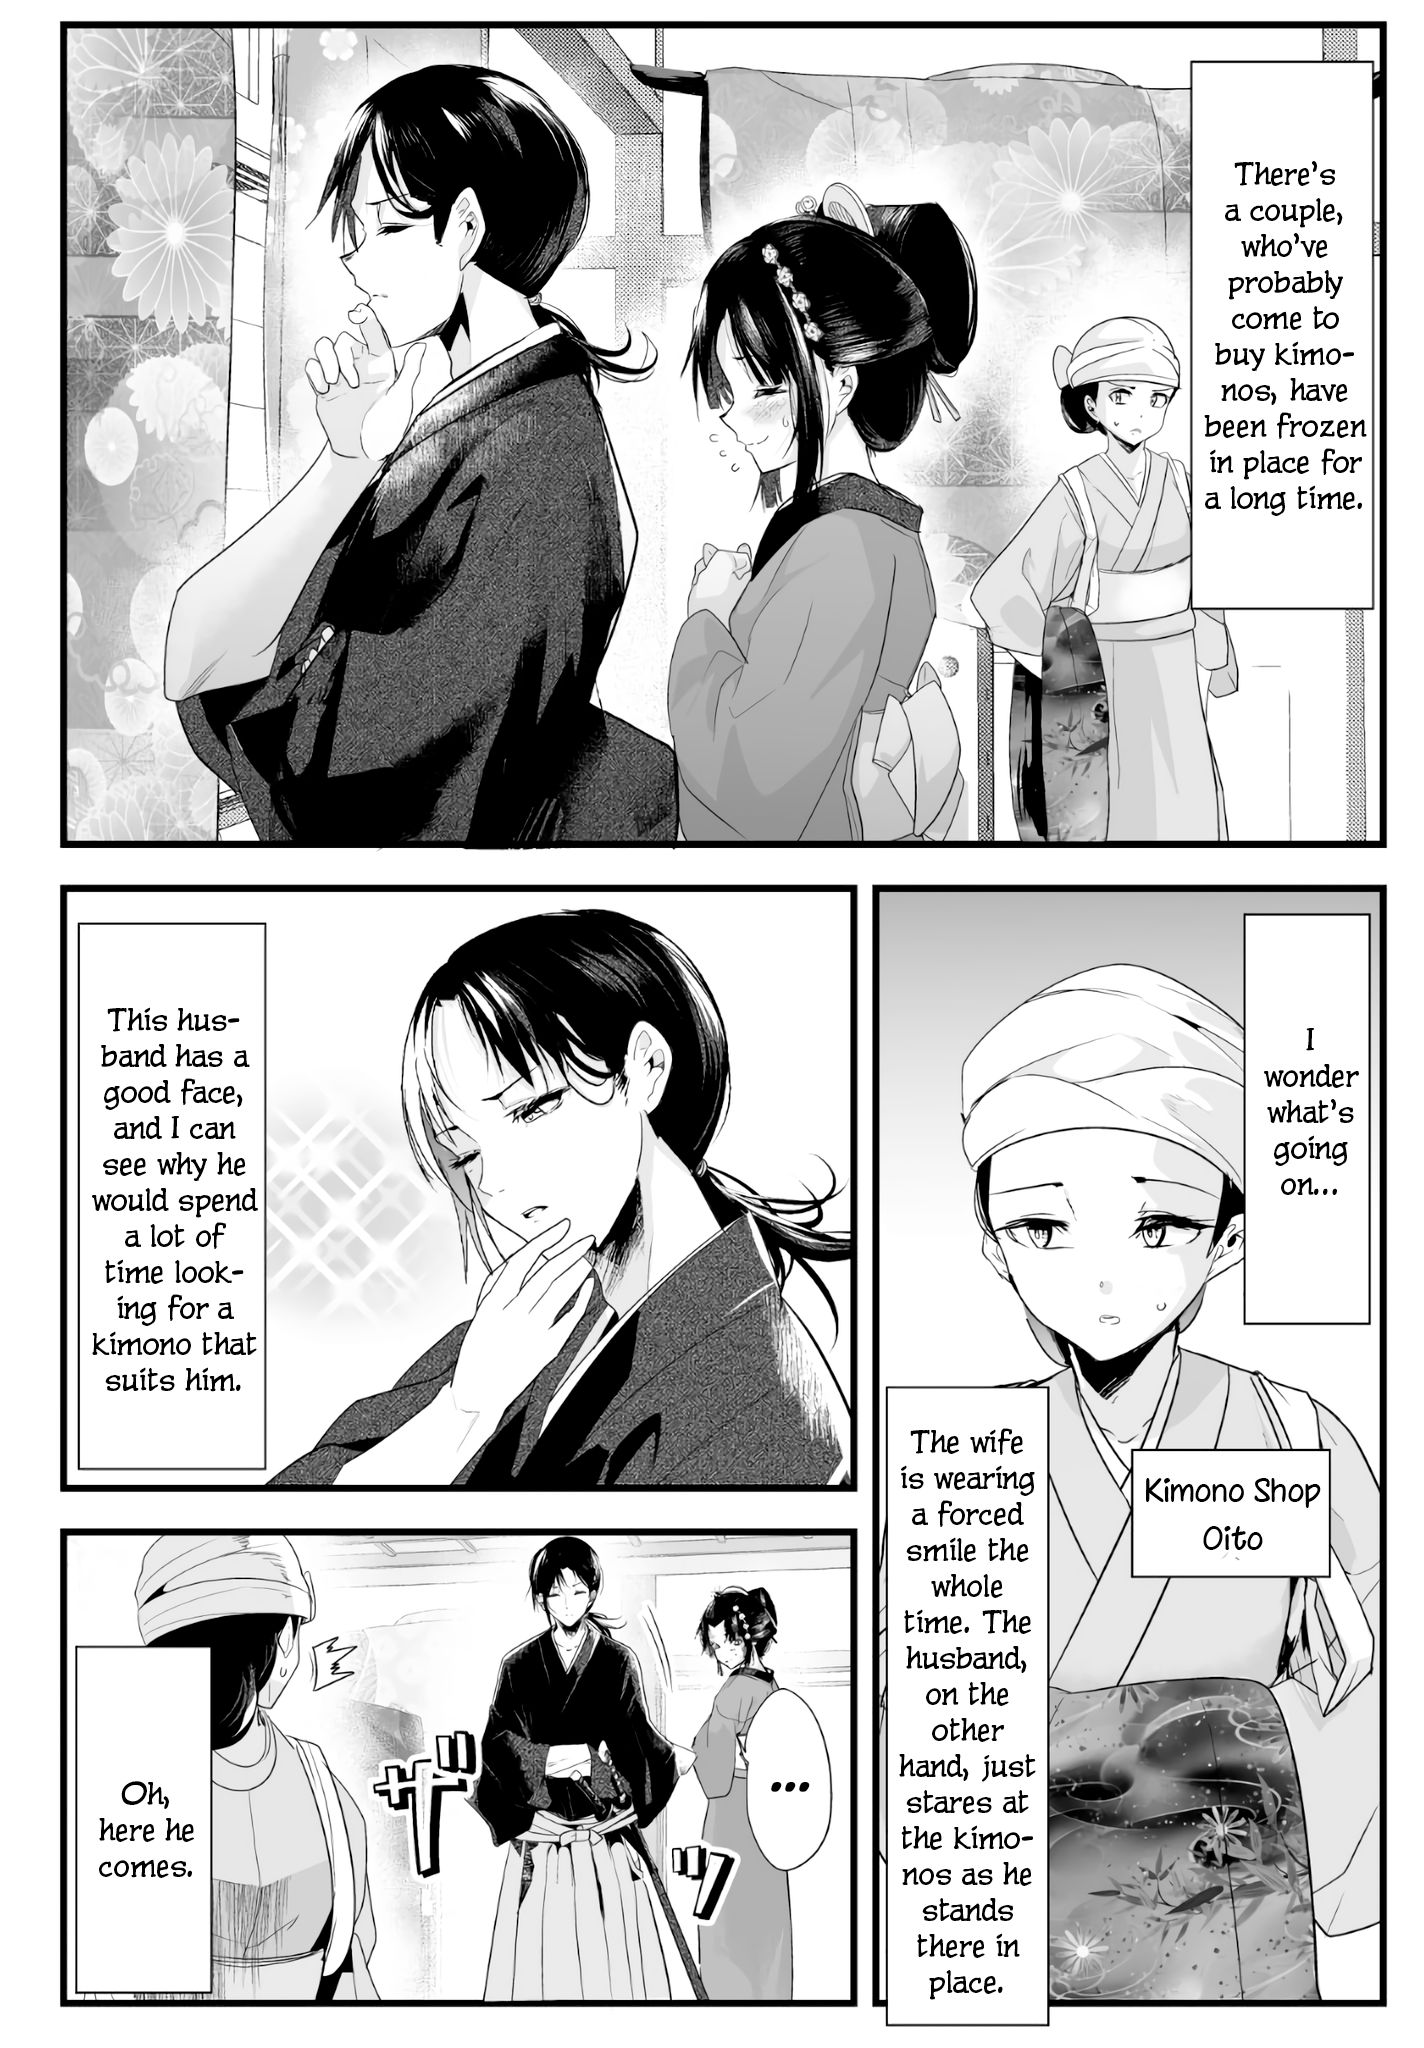 My New Wife is Forcing Herself to Smile - chapter 22 - #1